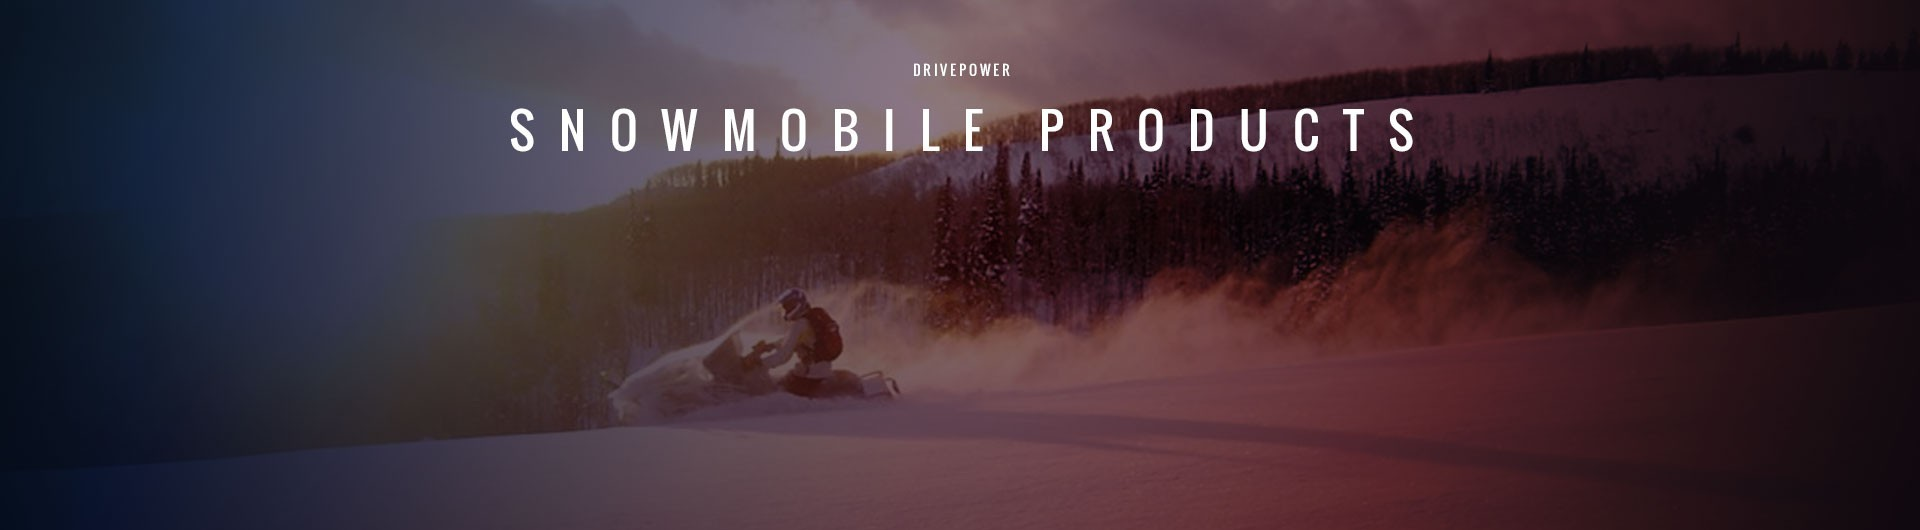 Drivepower Snowmobile Products